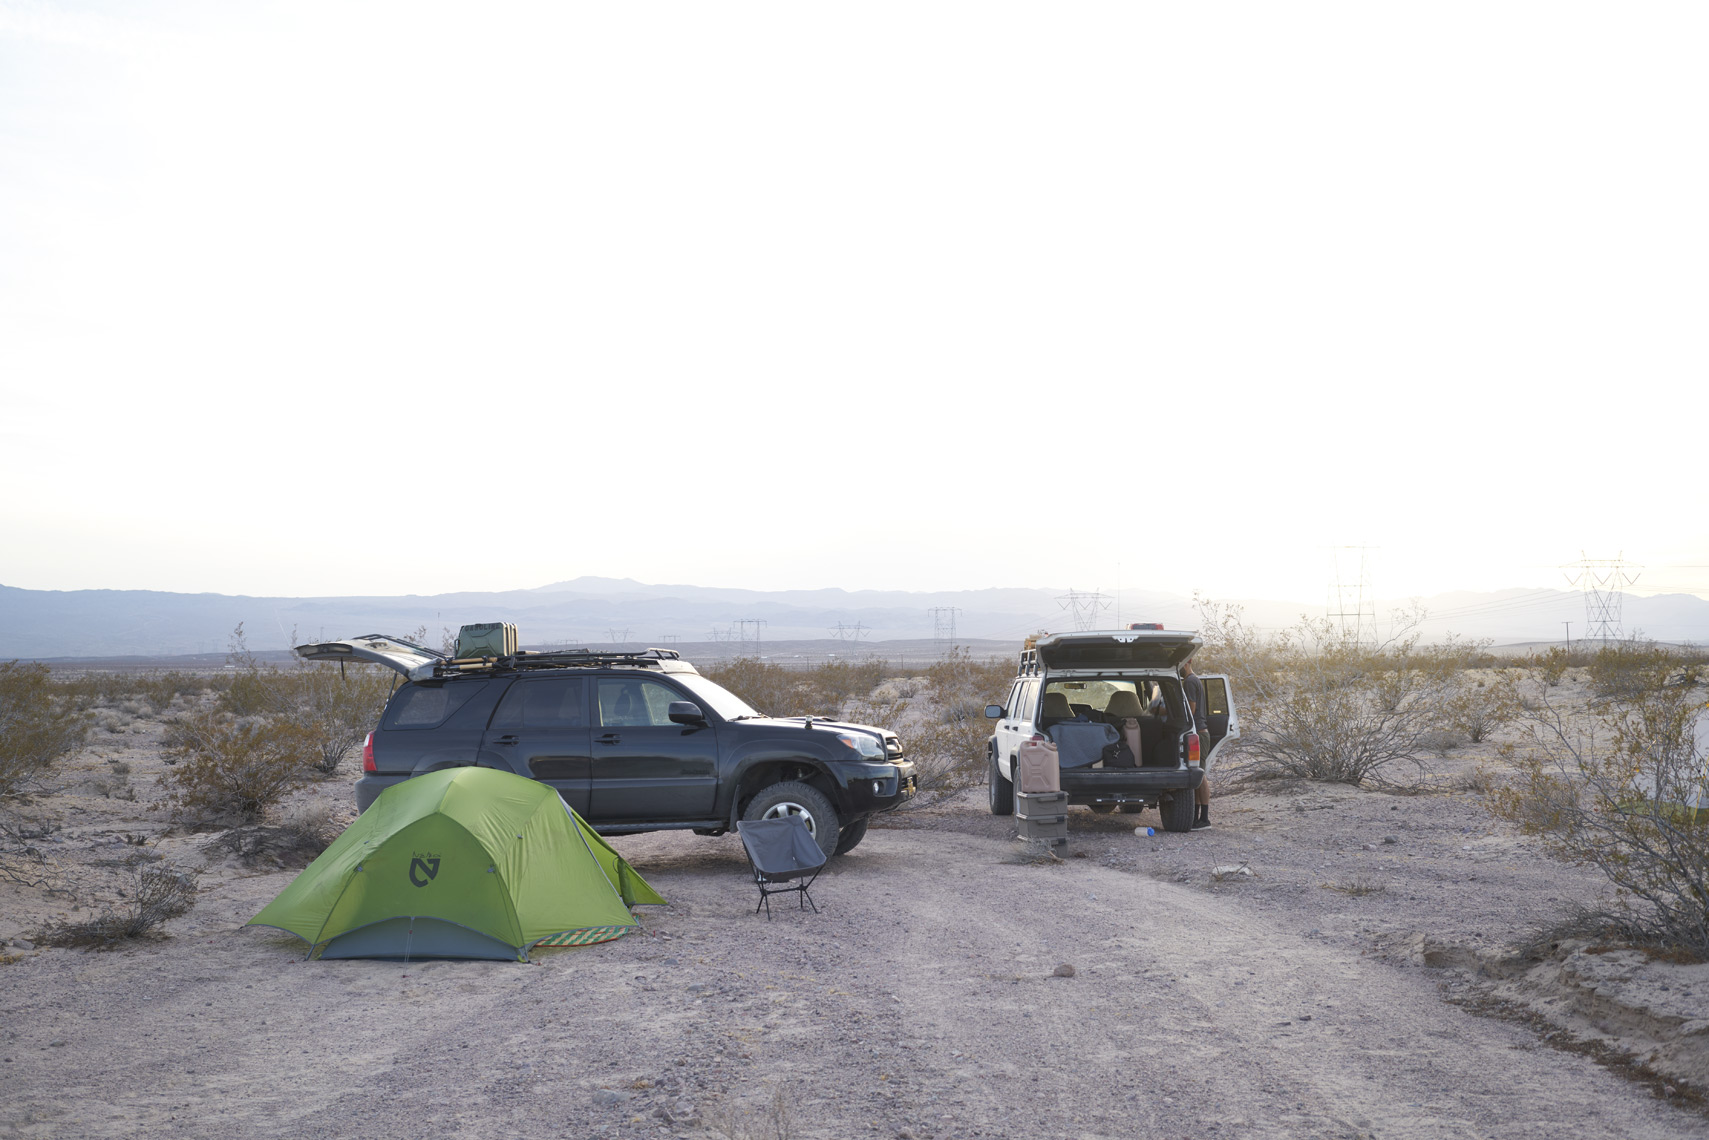 Camping in Mojave National Preserve California Sean Dagen Photography